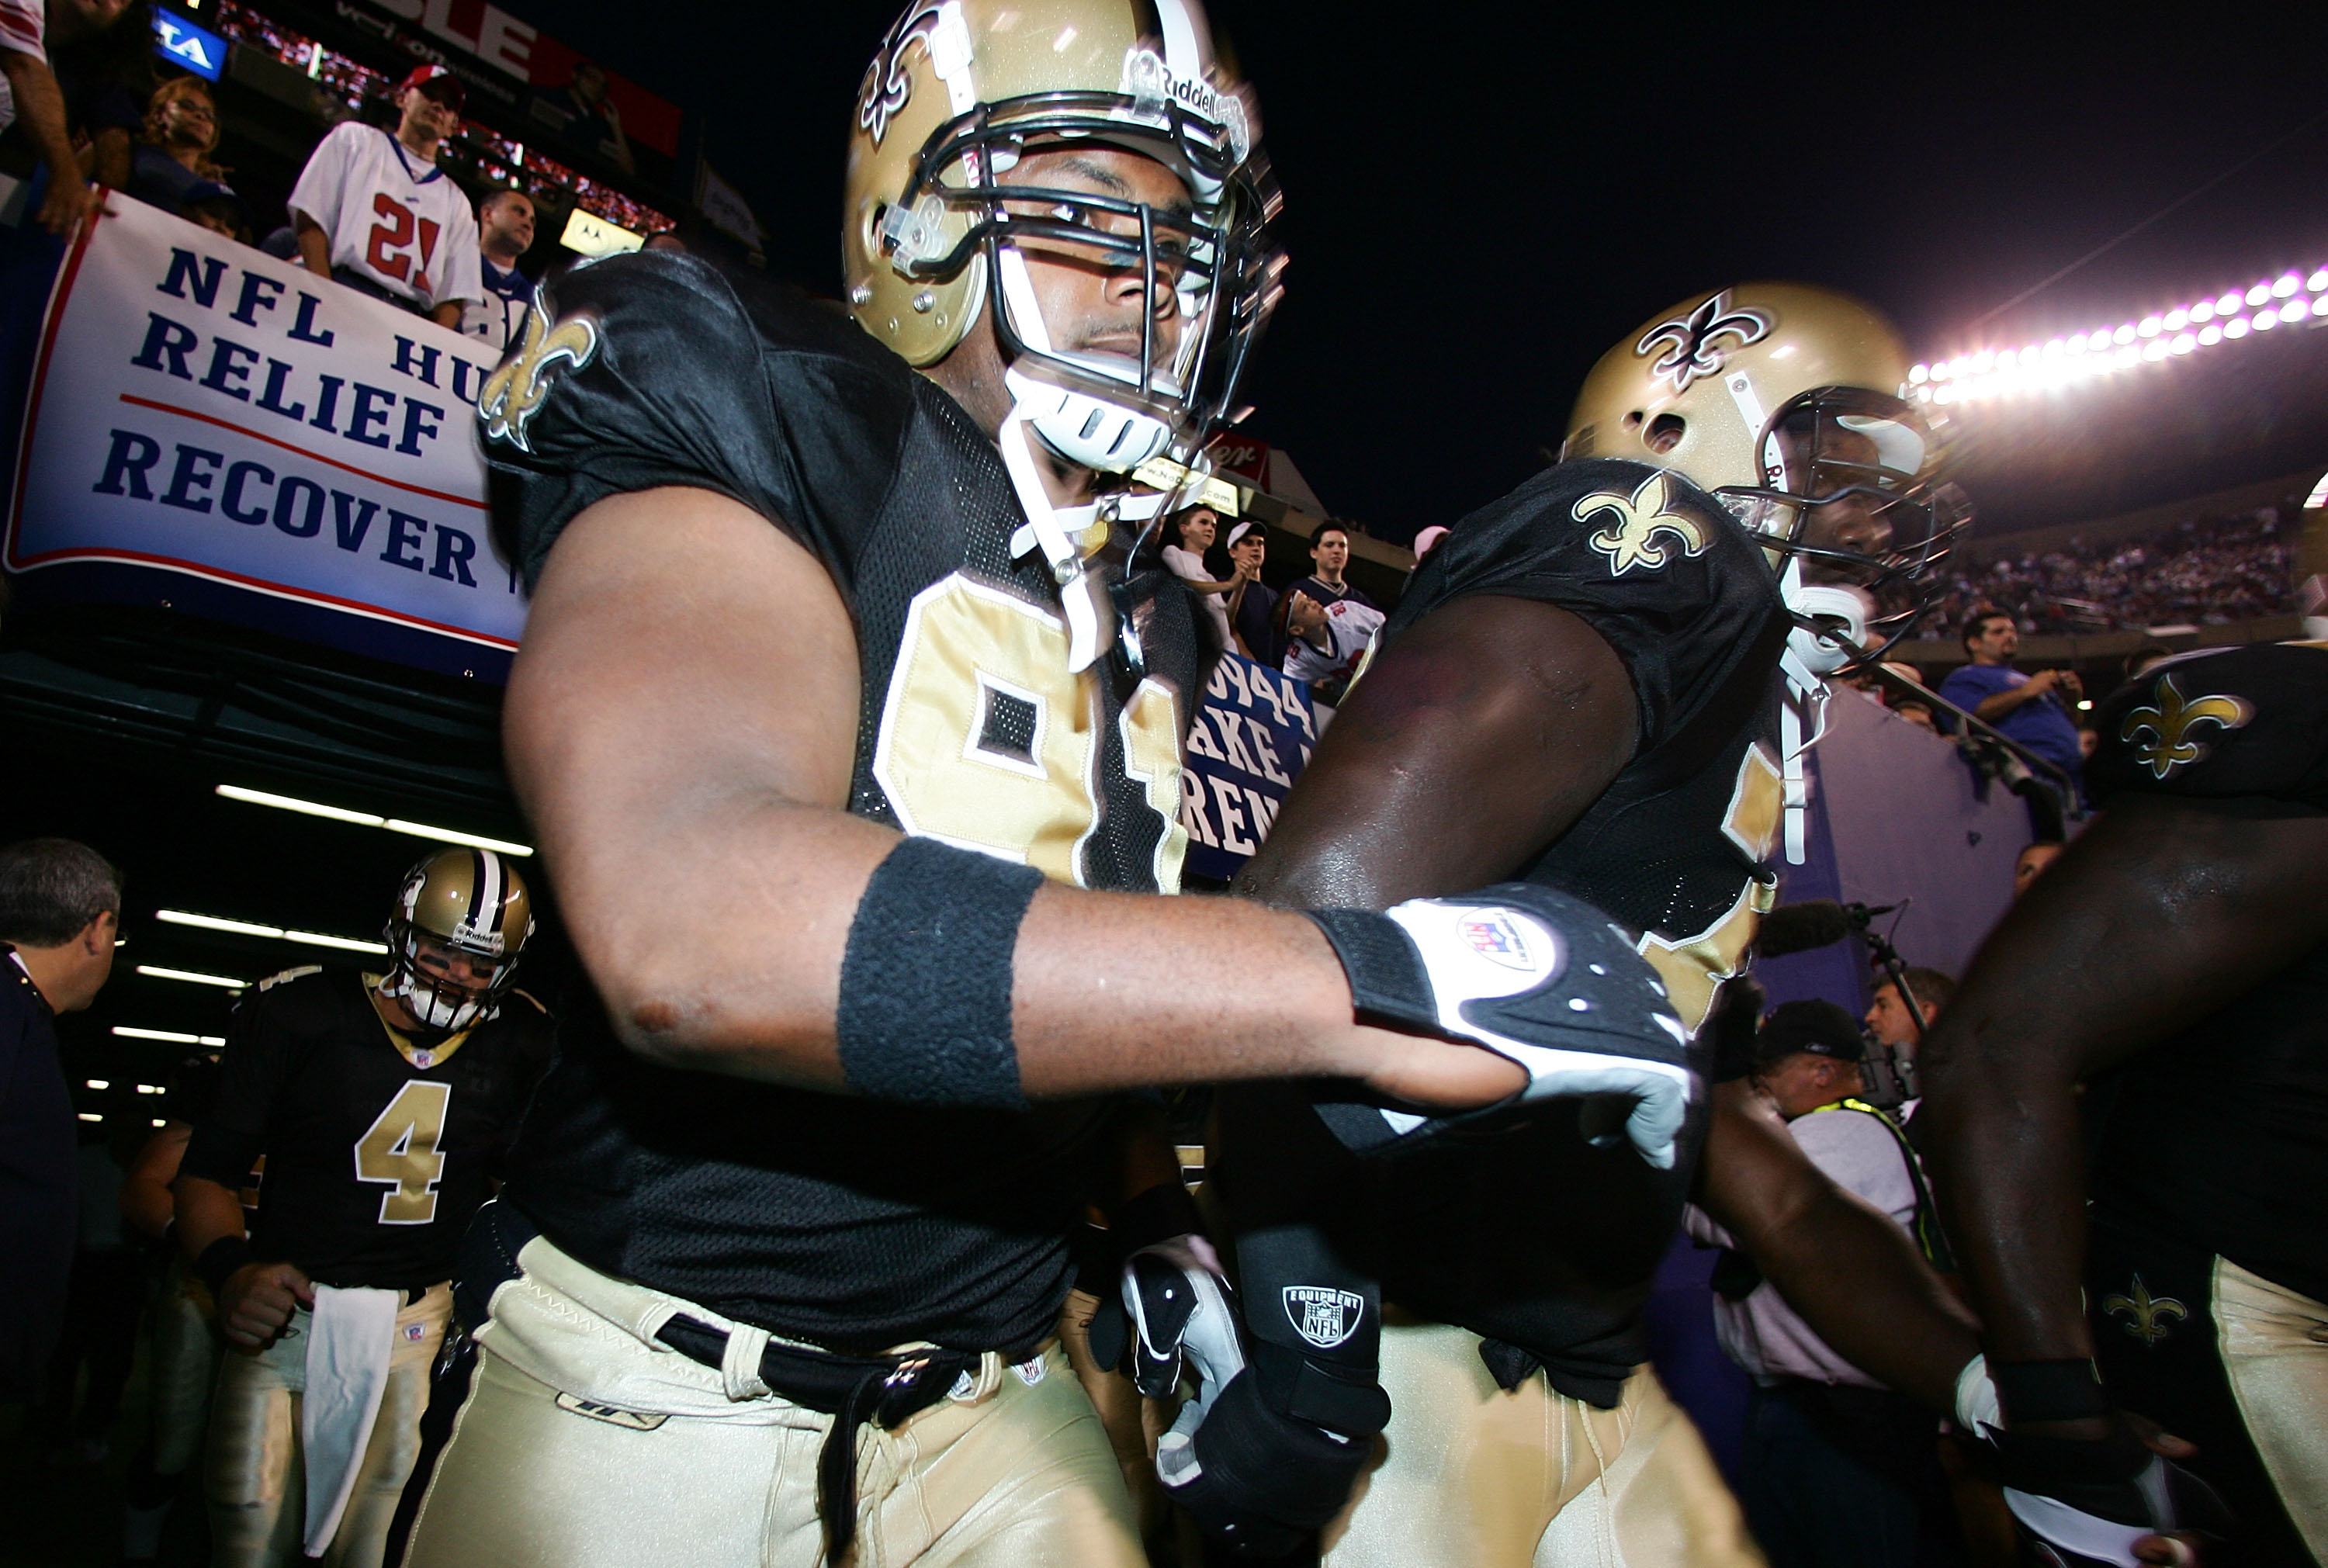 Will Smith and Jammal Brown of the New Orleans Saints take the field before the start of their game against the New York Giants on September 19, 2005 at Giants Stadium in East Rutherford, New Jersey.